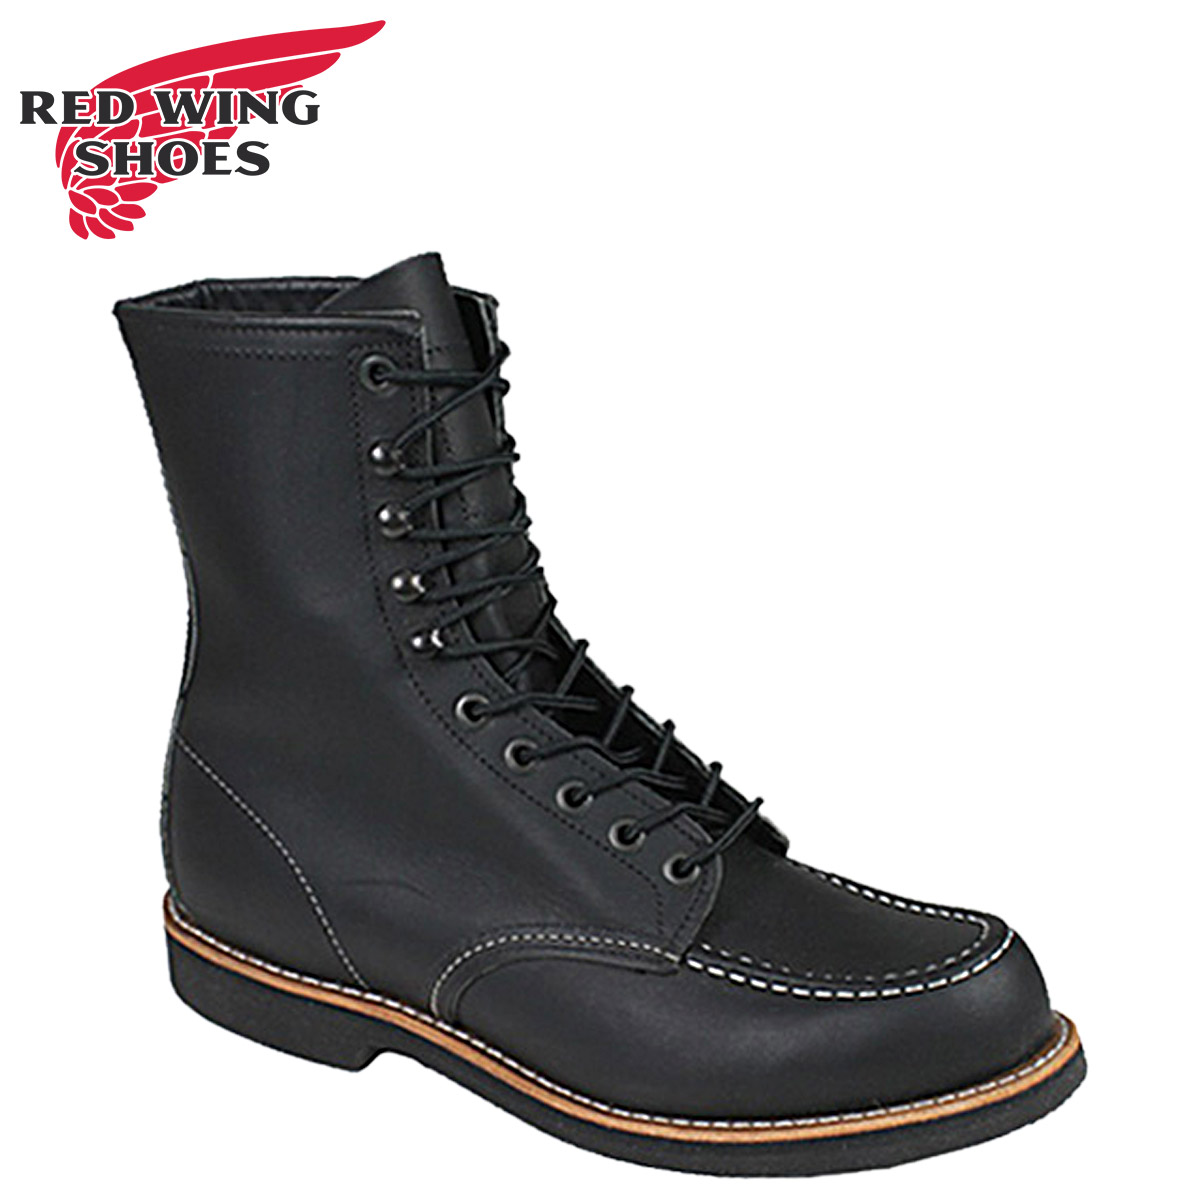 Sugar Online Shop | Rakuten Global Market: 200 Redwing RED WING ...